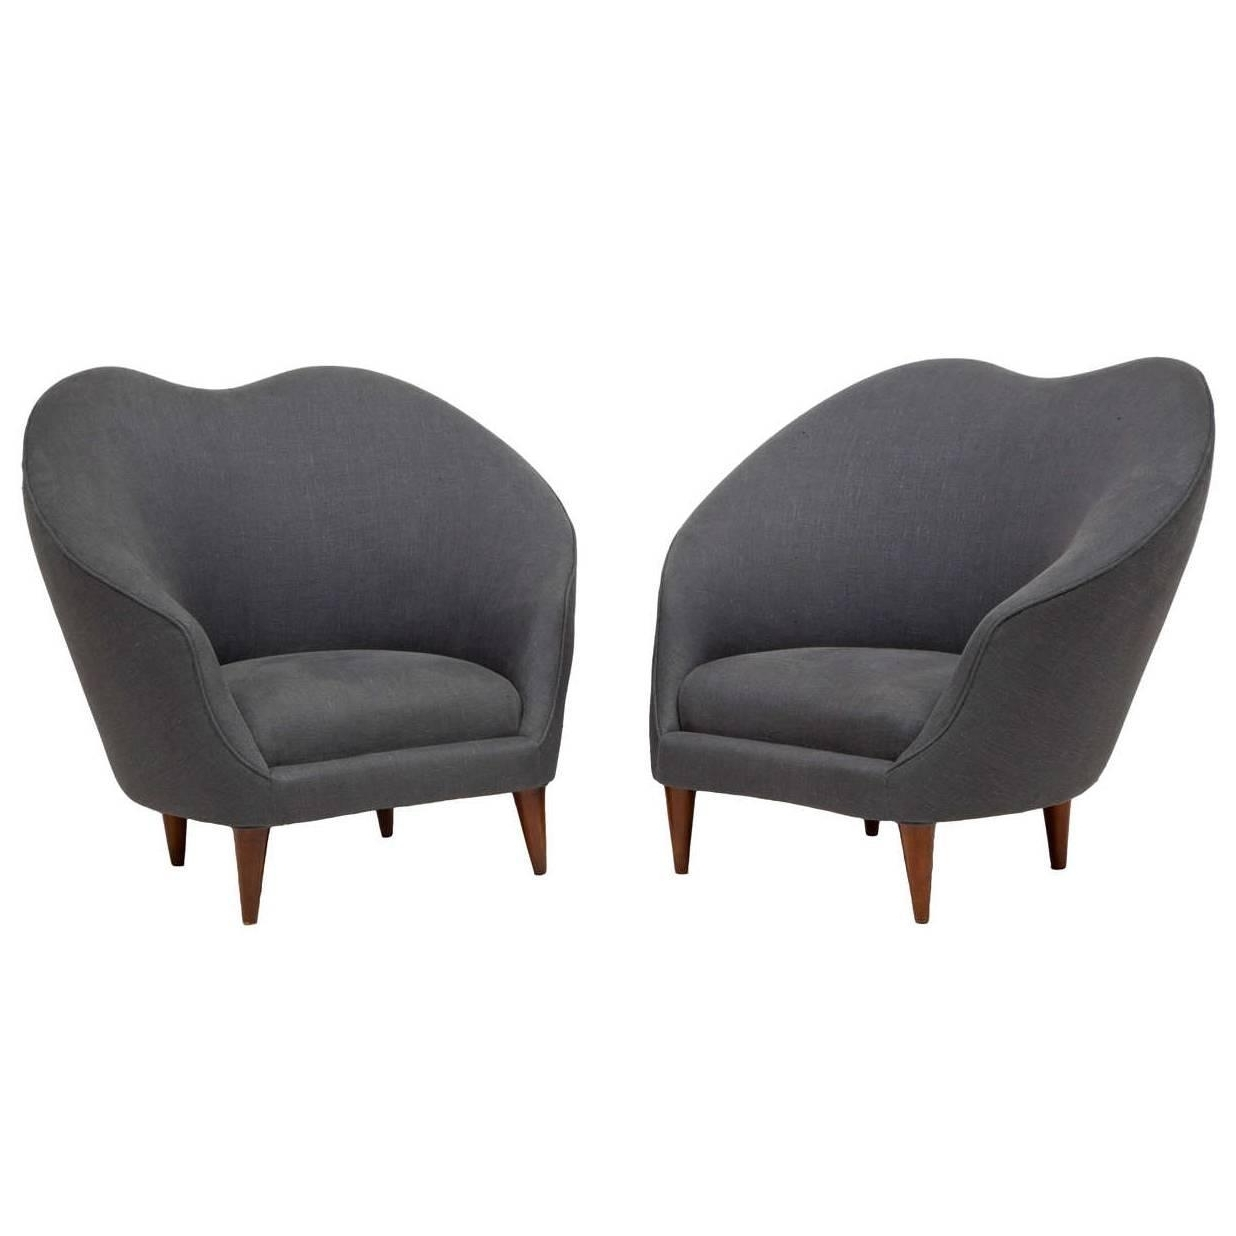 Newest Munari Chairs – Caira Mandaglio With Regard To Caira Black Upholstered Side Chairs (Gallery 17 of 20)